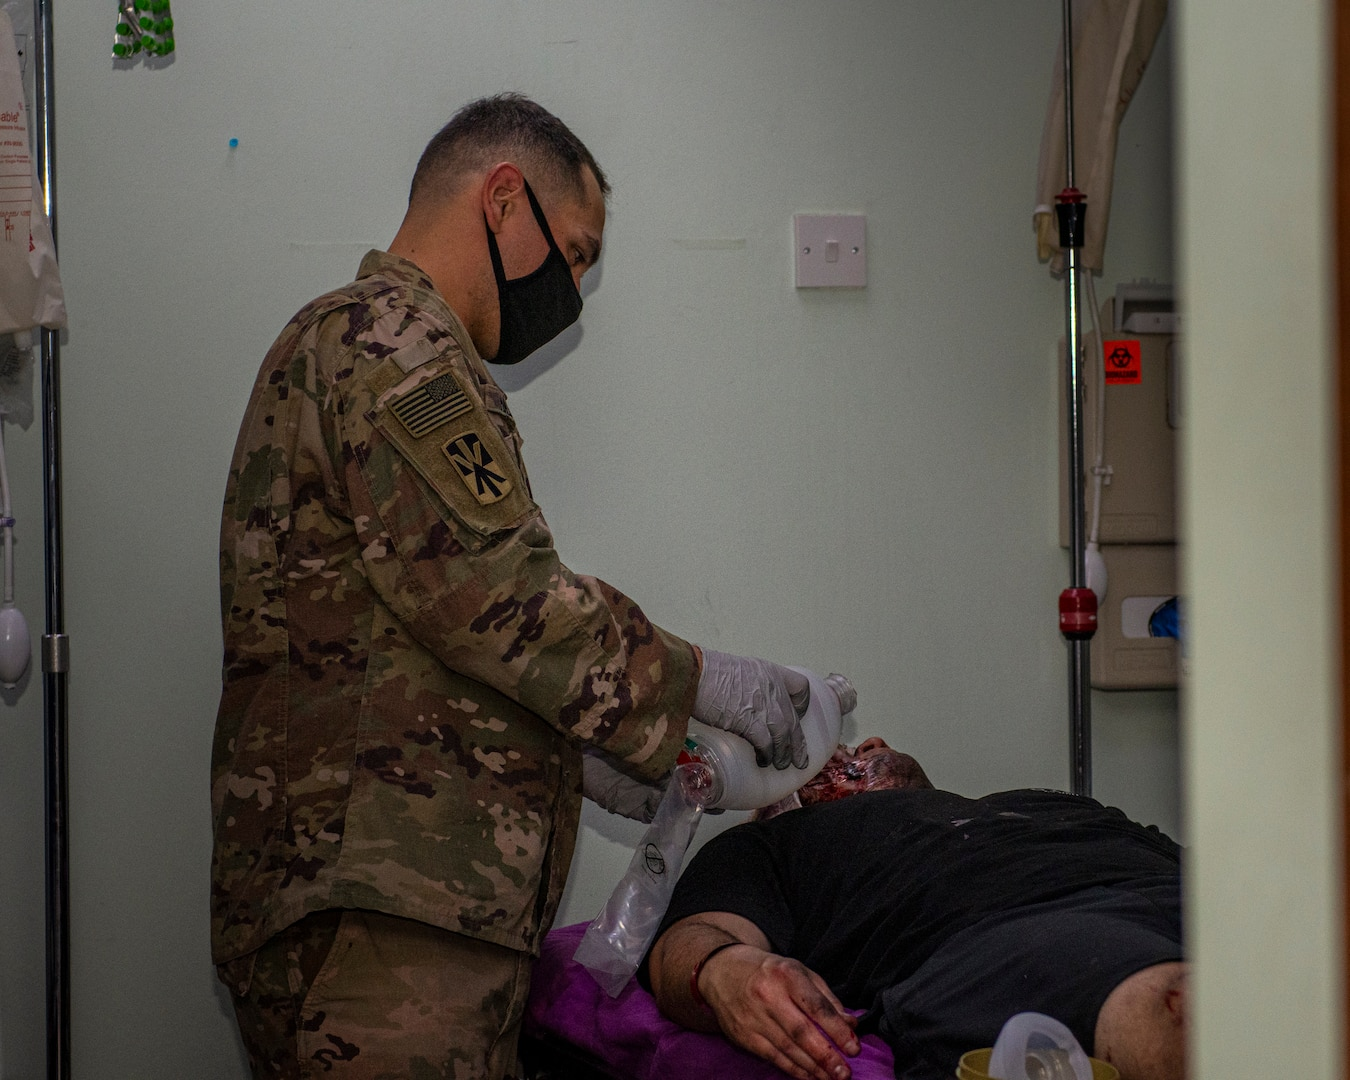 Soldier performs medial procedure on a simulated patient.